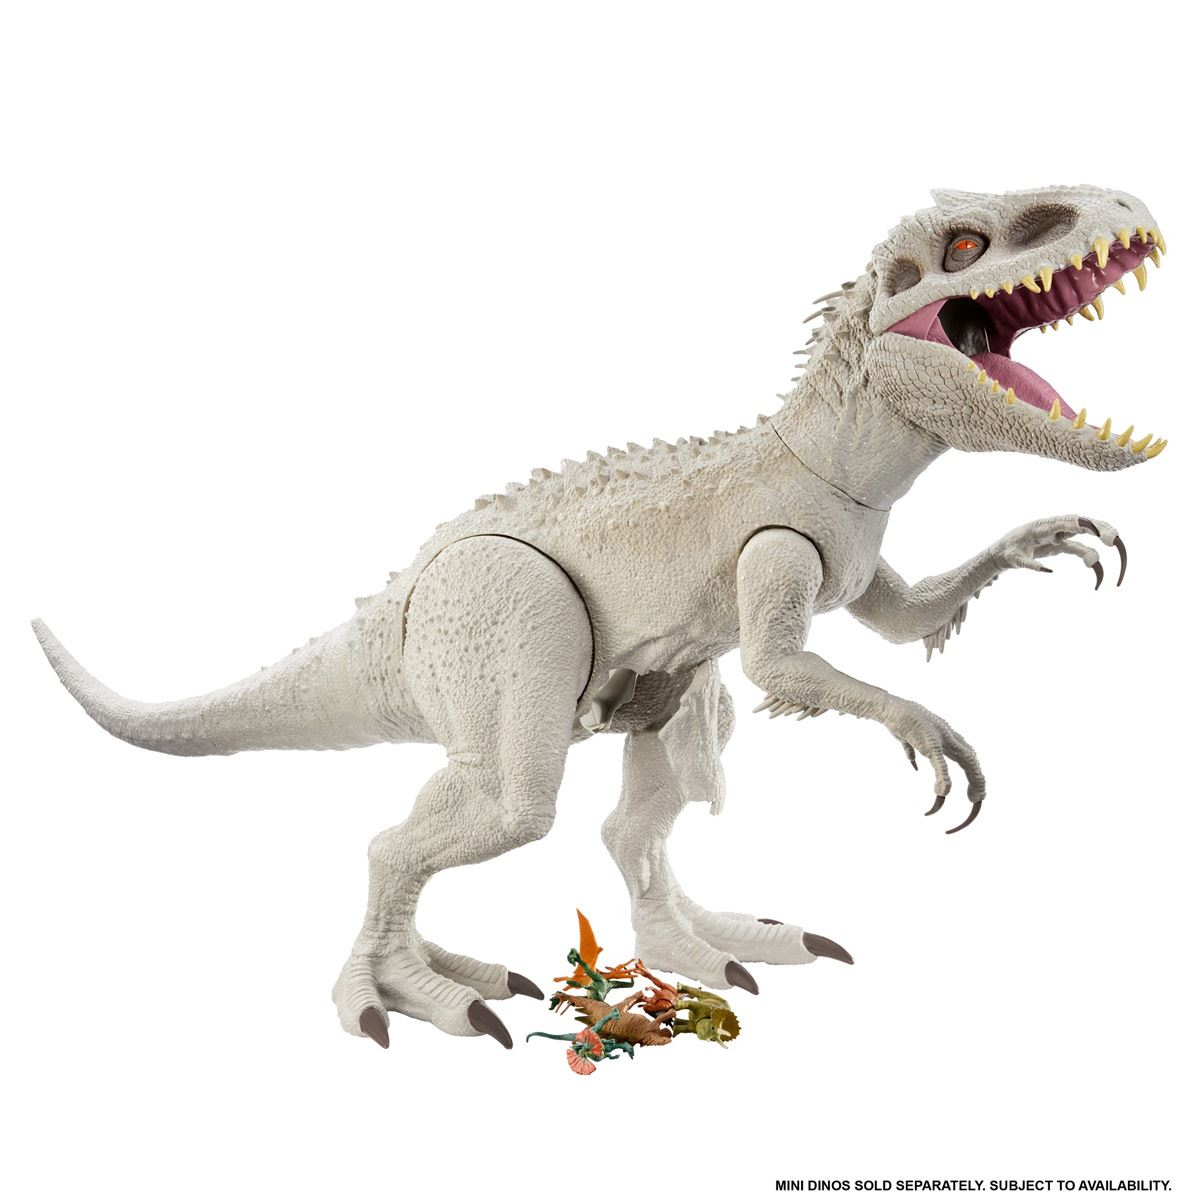 Jurassic World Jurassic World Dinosaurio De Juguete Indominus Rex Super Colosal Choose from contactless same day delivery, drive up and jurassic world dino rivals destroy 'n devour indominus rex is ready for an epic battle. jurassic world jurassic world dinosaurio de juguete indominus rex super colosal